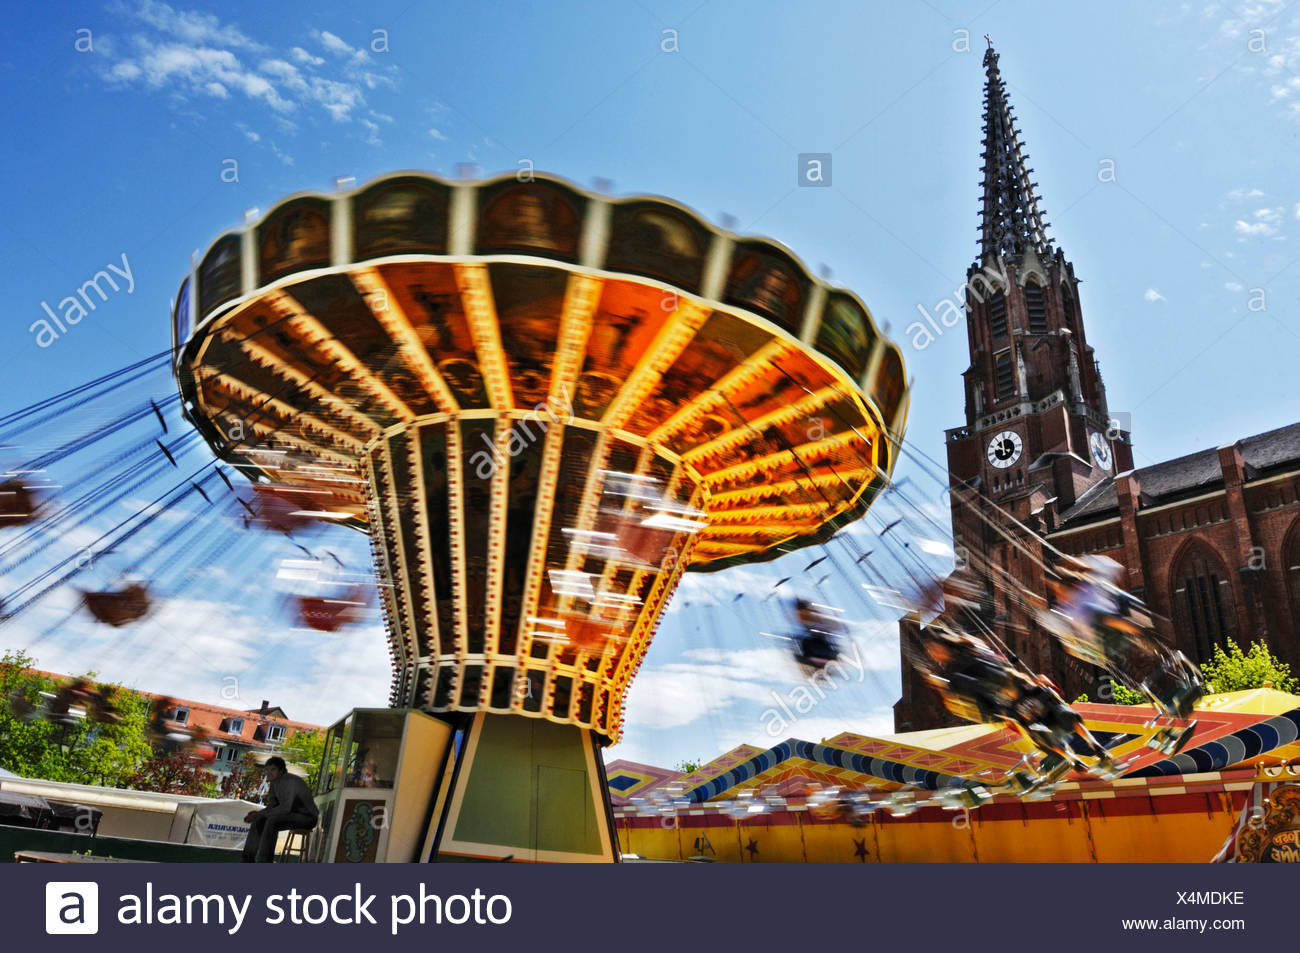 Chair-O-Plane, Auer Dult, traditional market in Munich, Bavaria, Germany, Europe Stock Photo